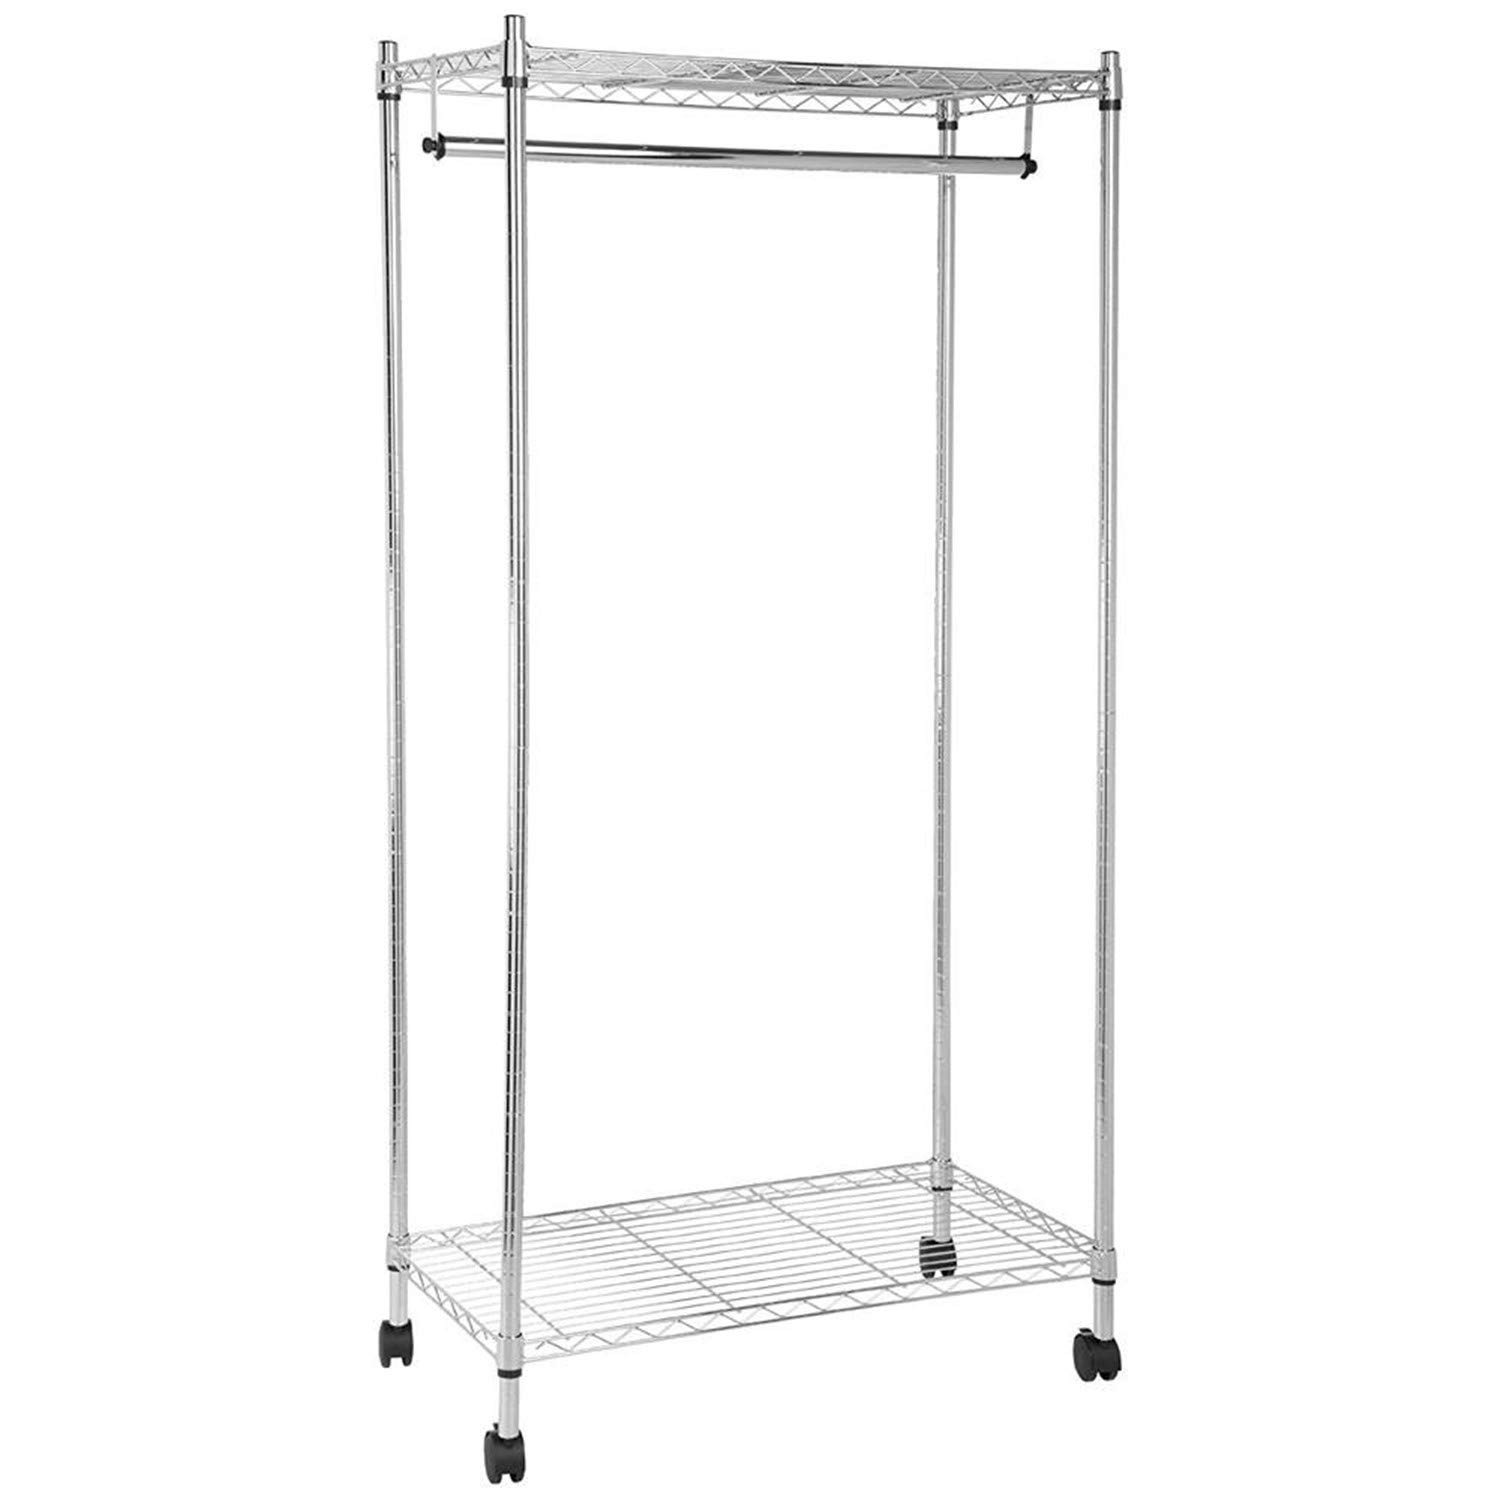 Double Layer Electroplated Iron Drying Rack with 2'' Nylon Wheels Silver